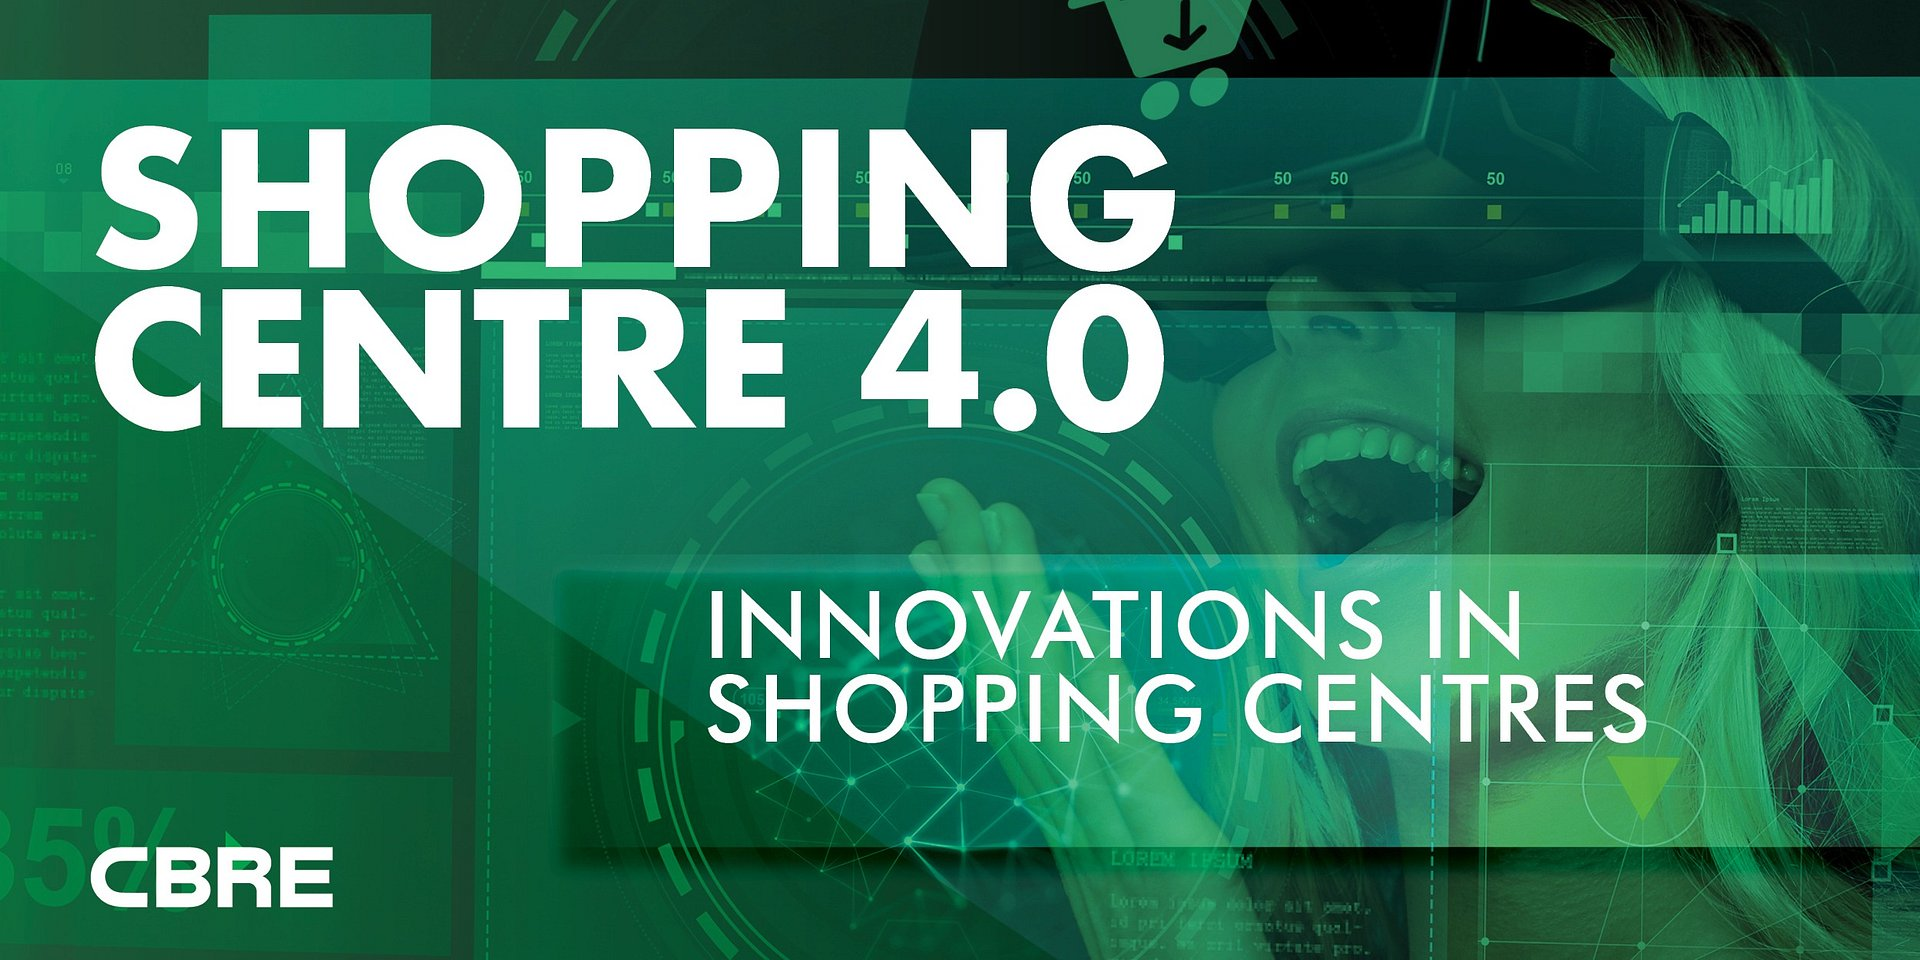 SHOPPING CENTRES 4.0 ARE COMING